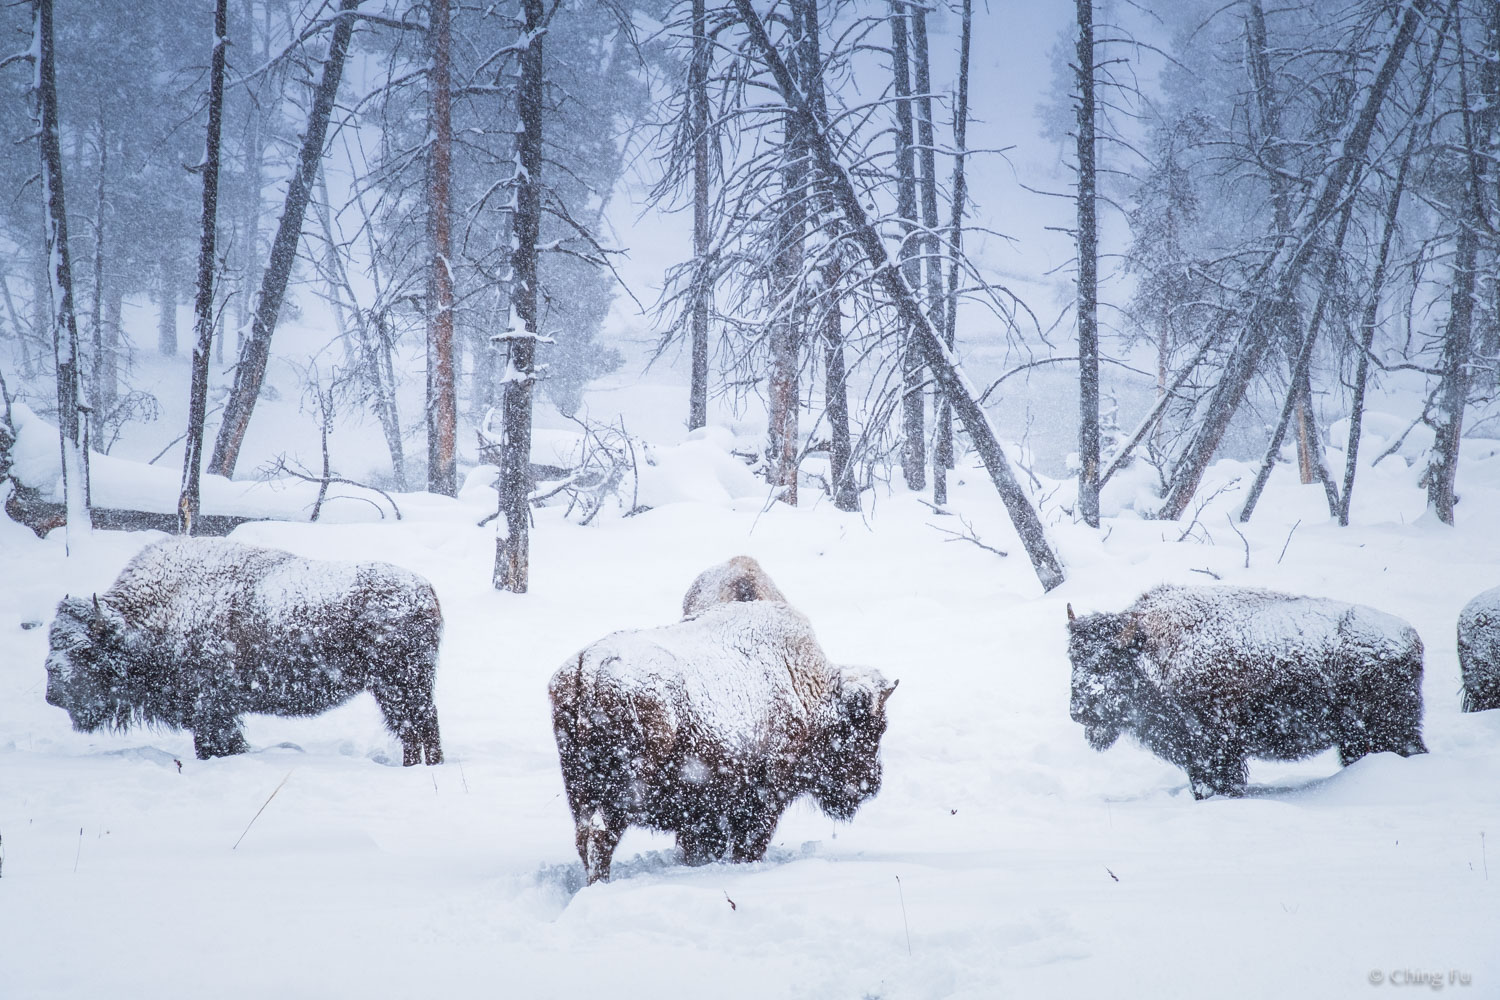 Herd of bison standing in the snow in Yellowstone National Park.